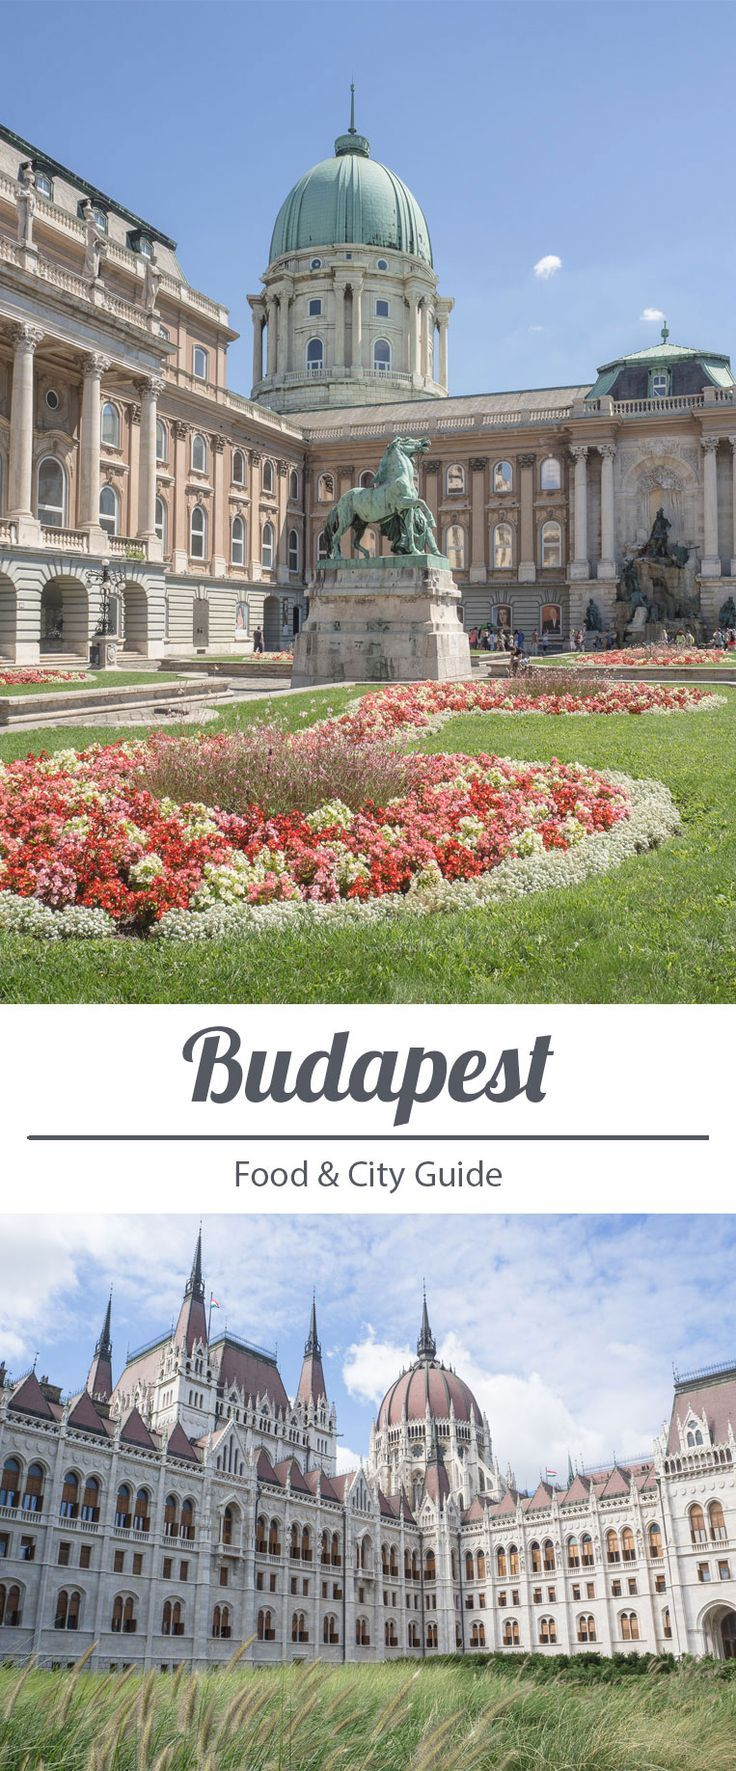 Budapest Food & City Guide